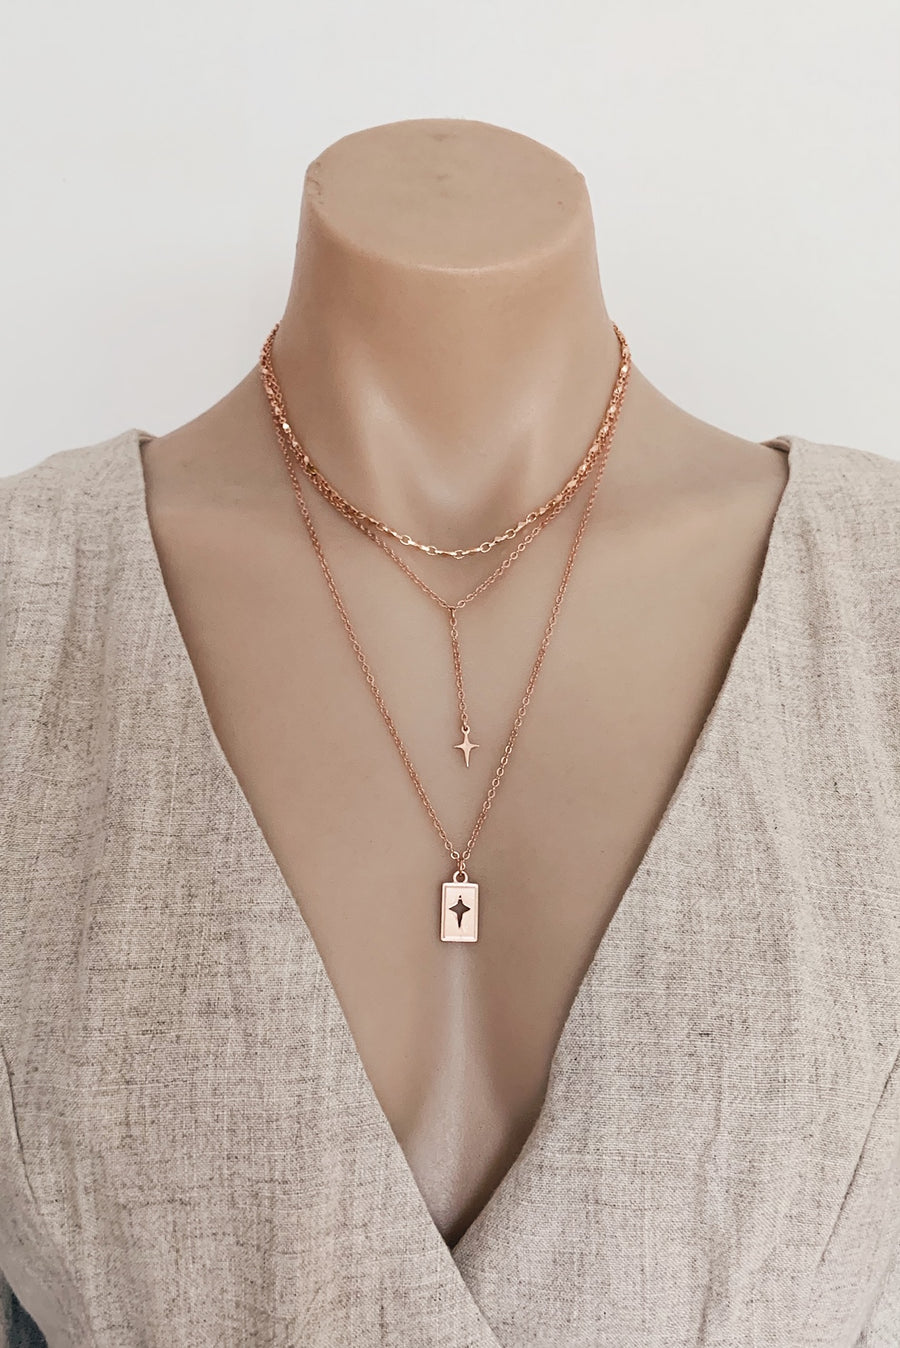 Daegan Necklace in Rose Gold - HER Empire Fashion Boutique Terrigal & Online